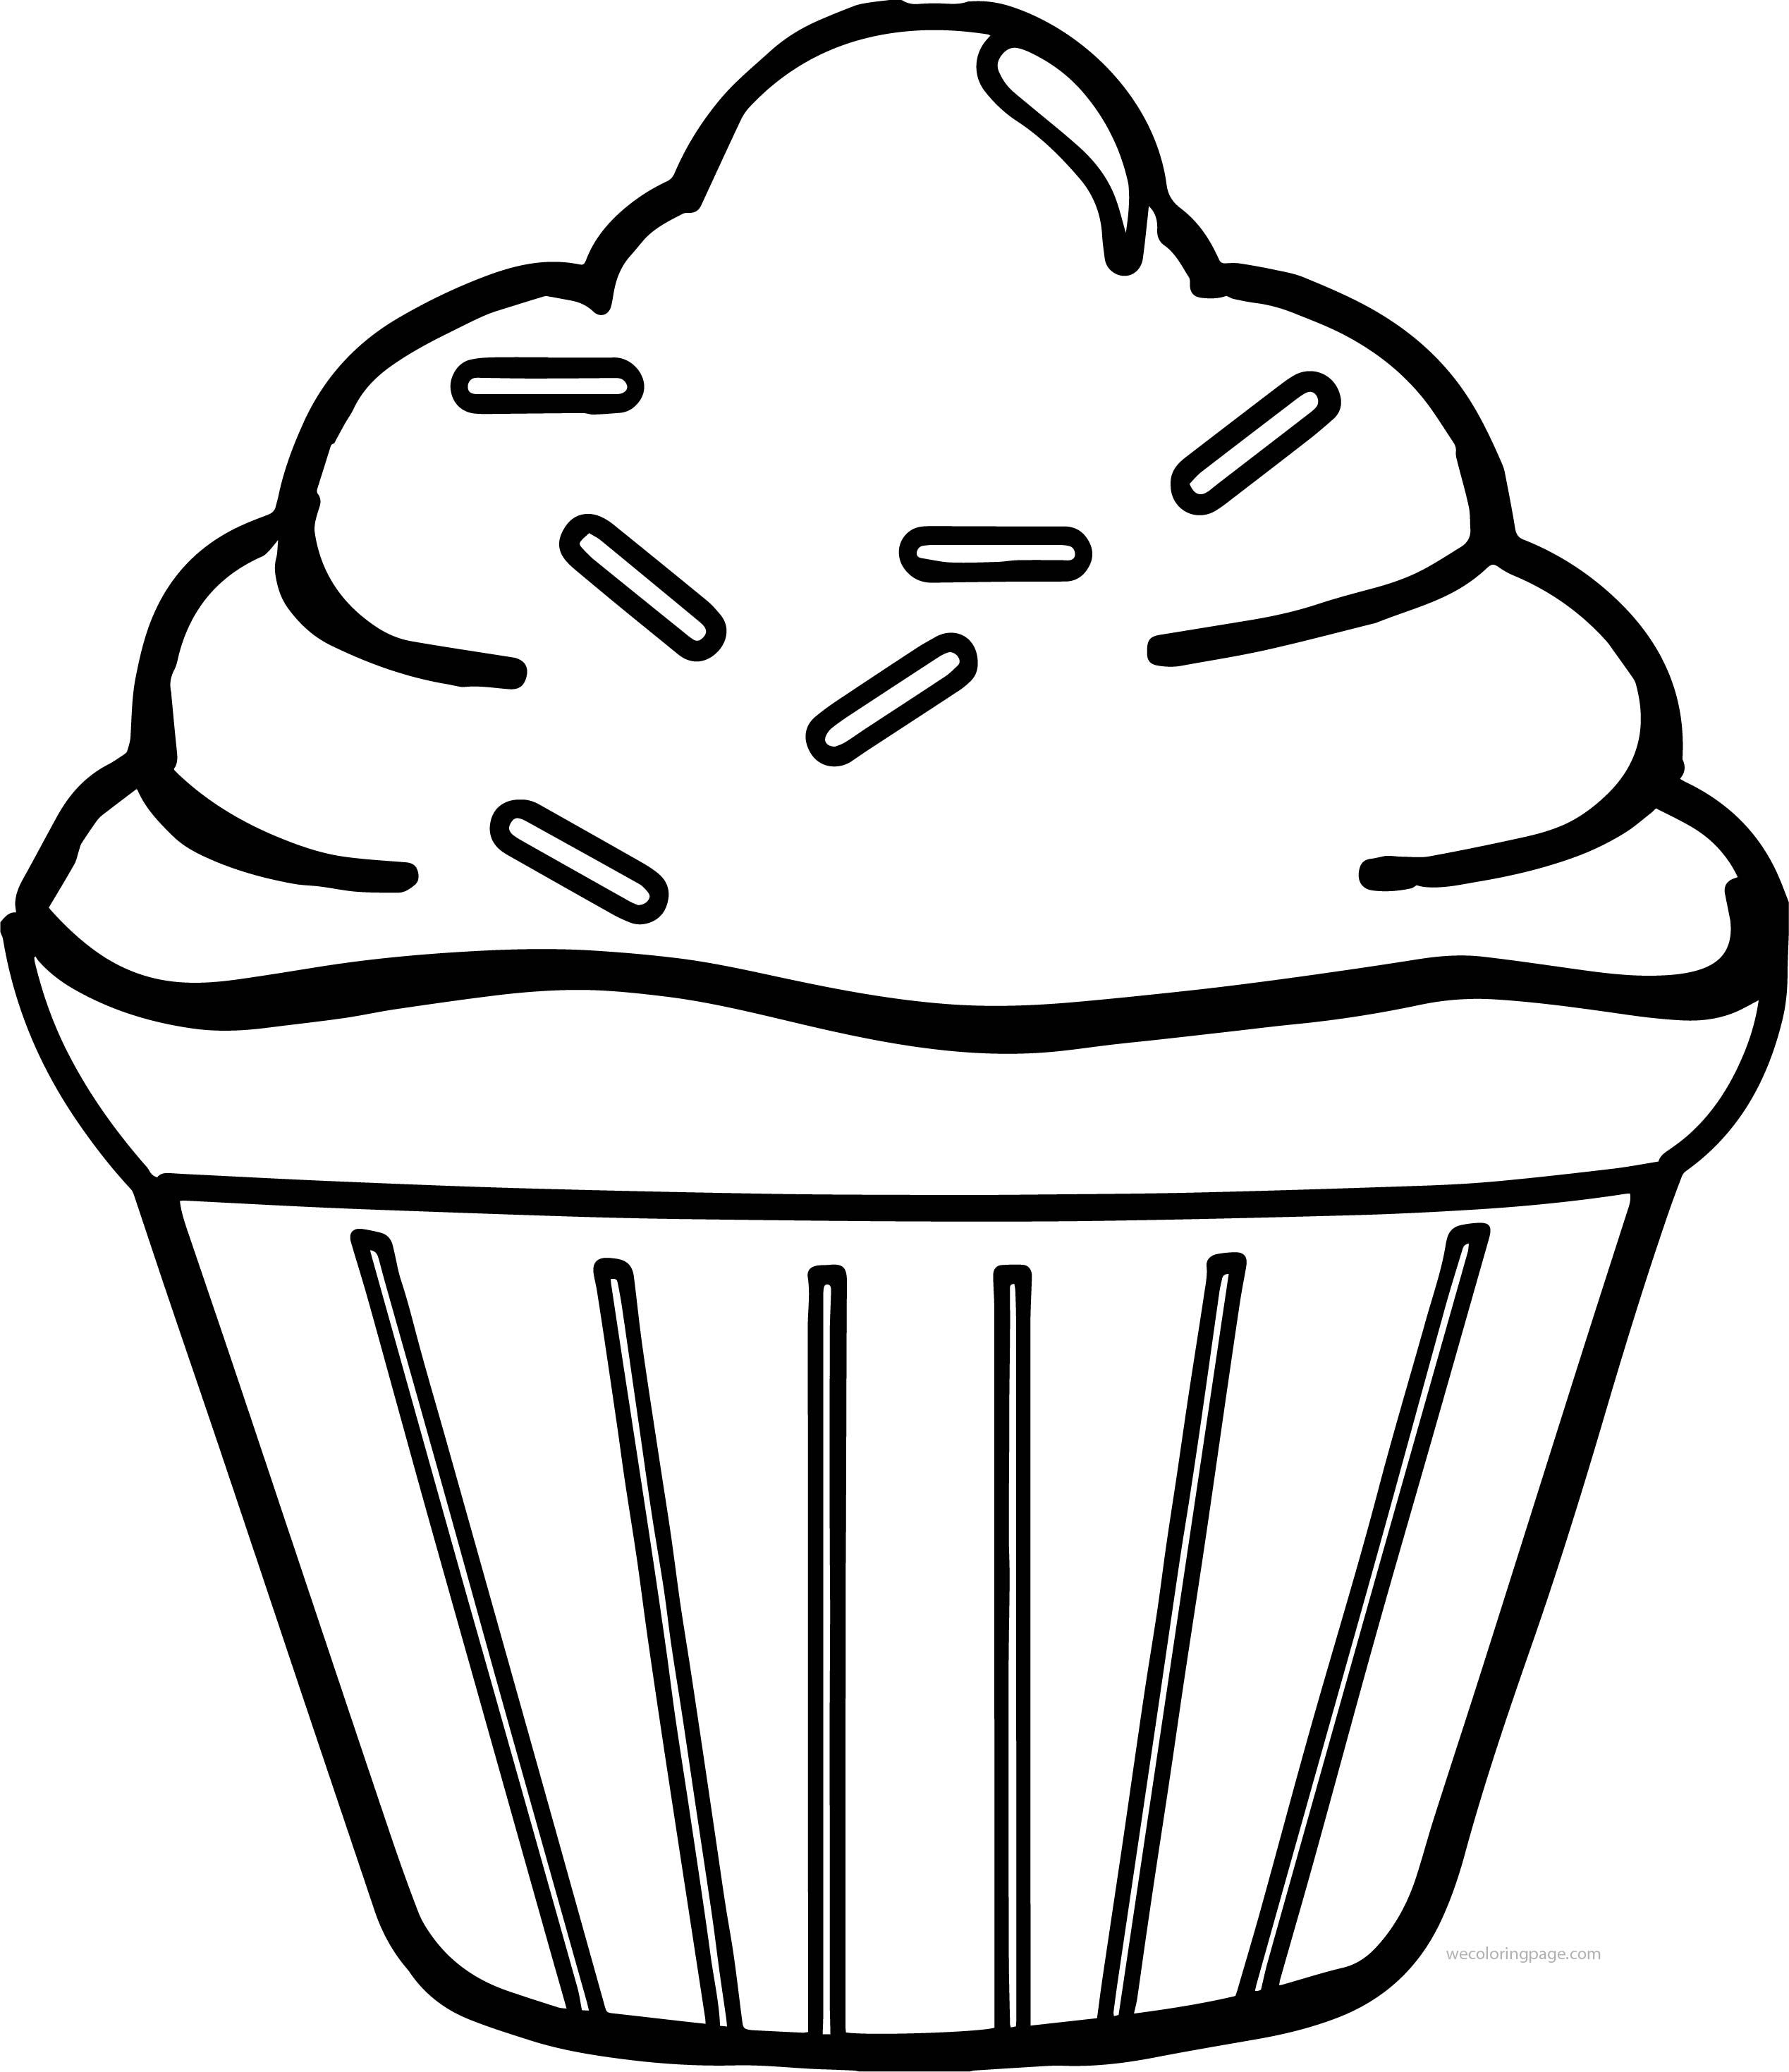 cool Simple Cupcake Coloring Page  Cupcake coloring pages, Easy